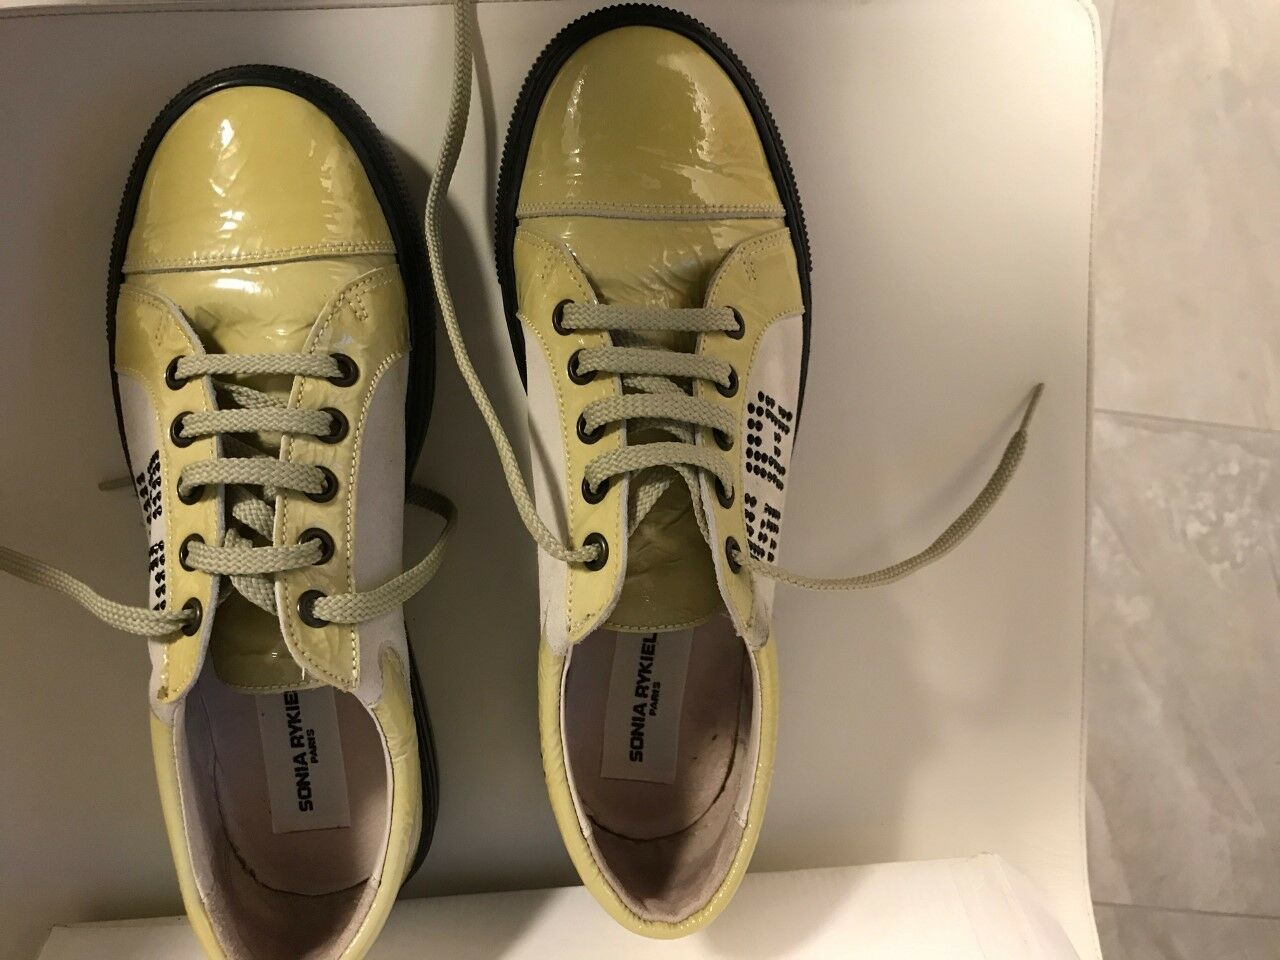 SONIA RYKIEL  Leather Sneaker Sport shoes SZ 38  US 8 NWB, MADE IN SPAIN